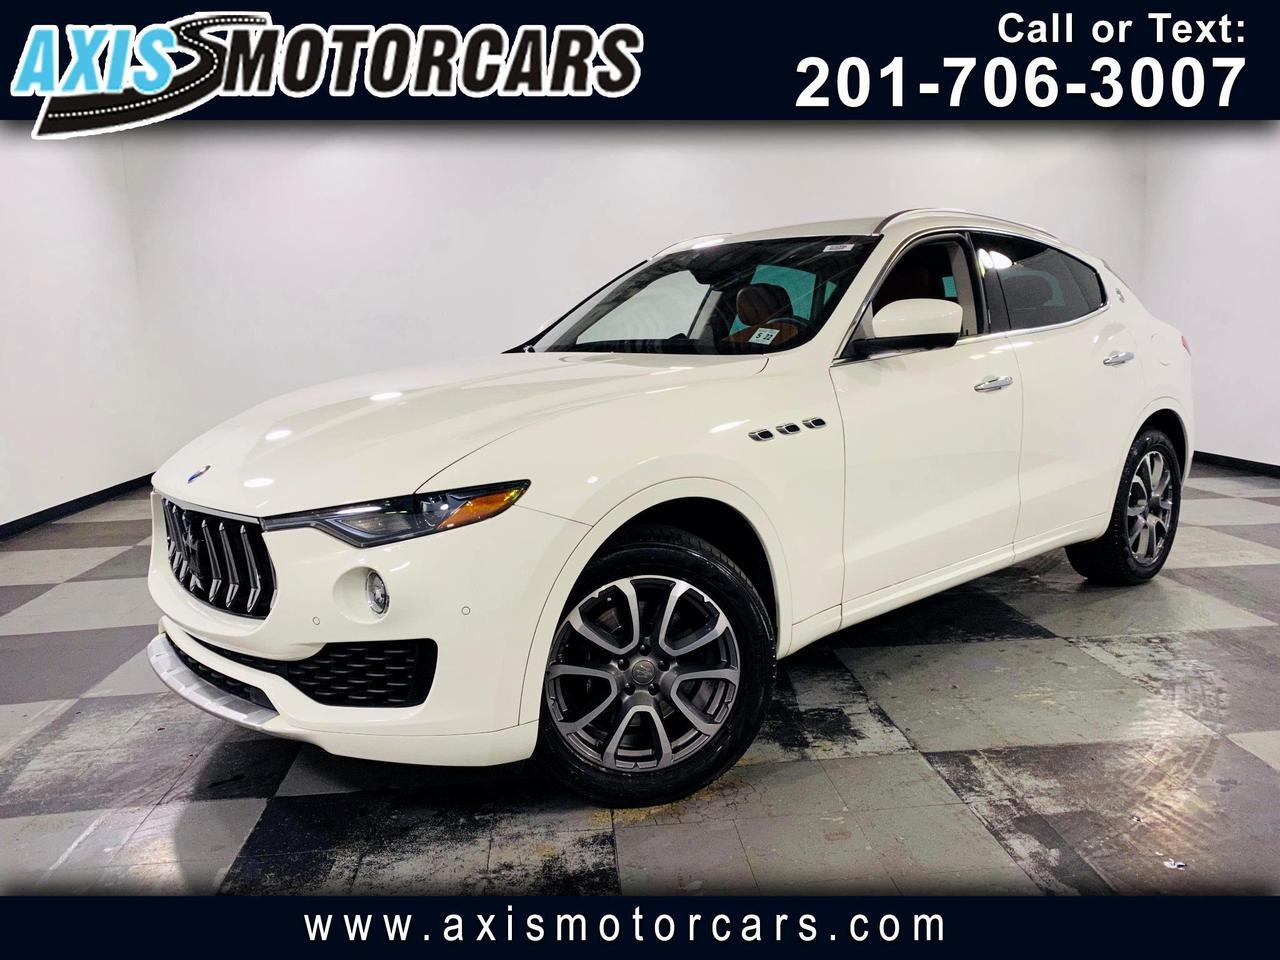 2017 Maserati Levante w/Harman Kardon Sound Backup Camera 360 Navigation Jersey City NJ